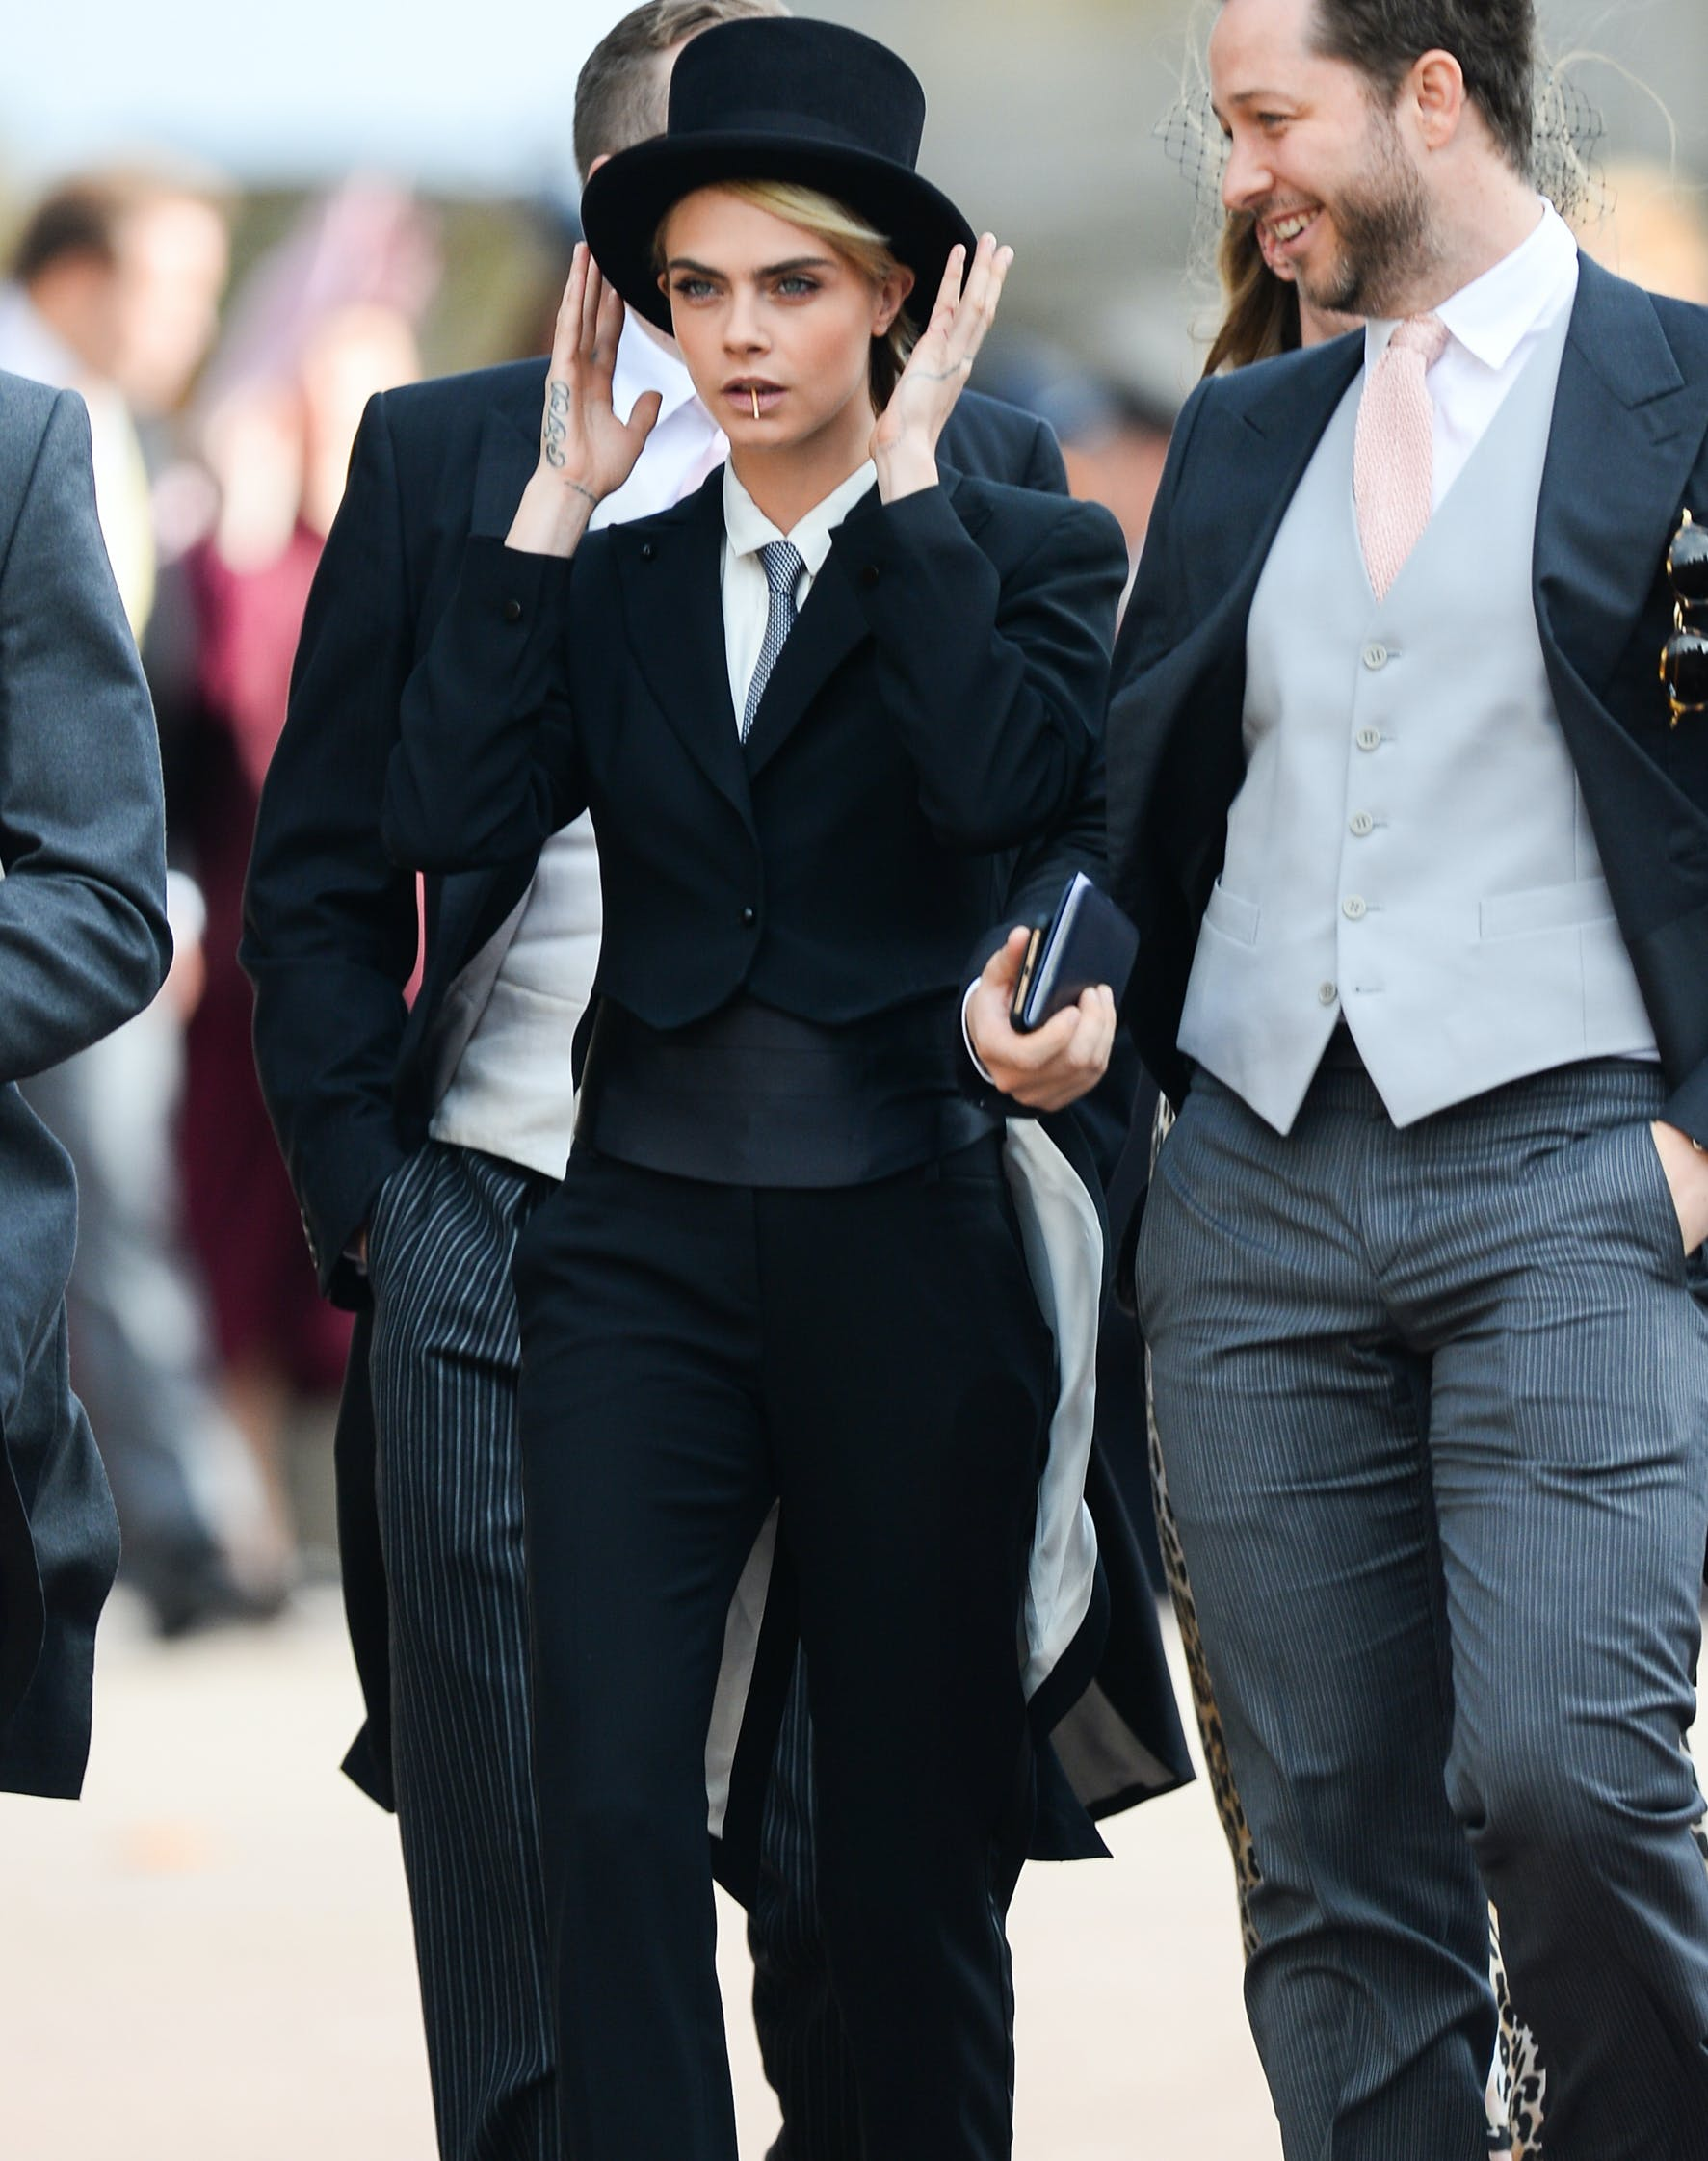 Cara Delevingne Texted Princess Eugenie Before Wearing a Tux to Her Wedding